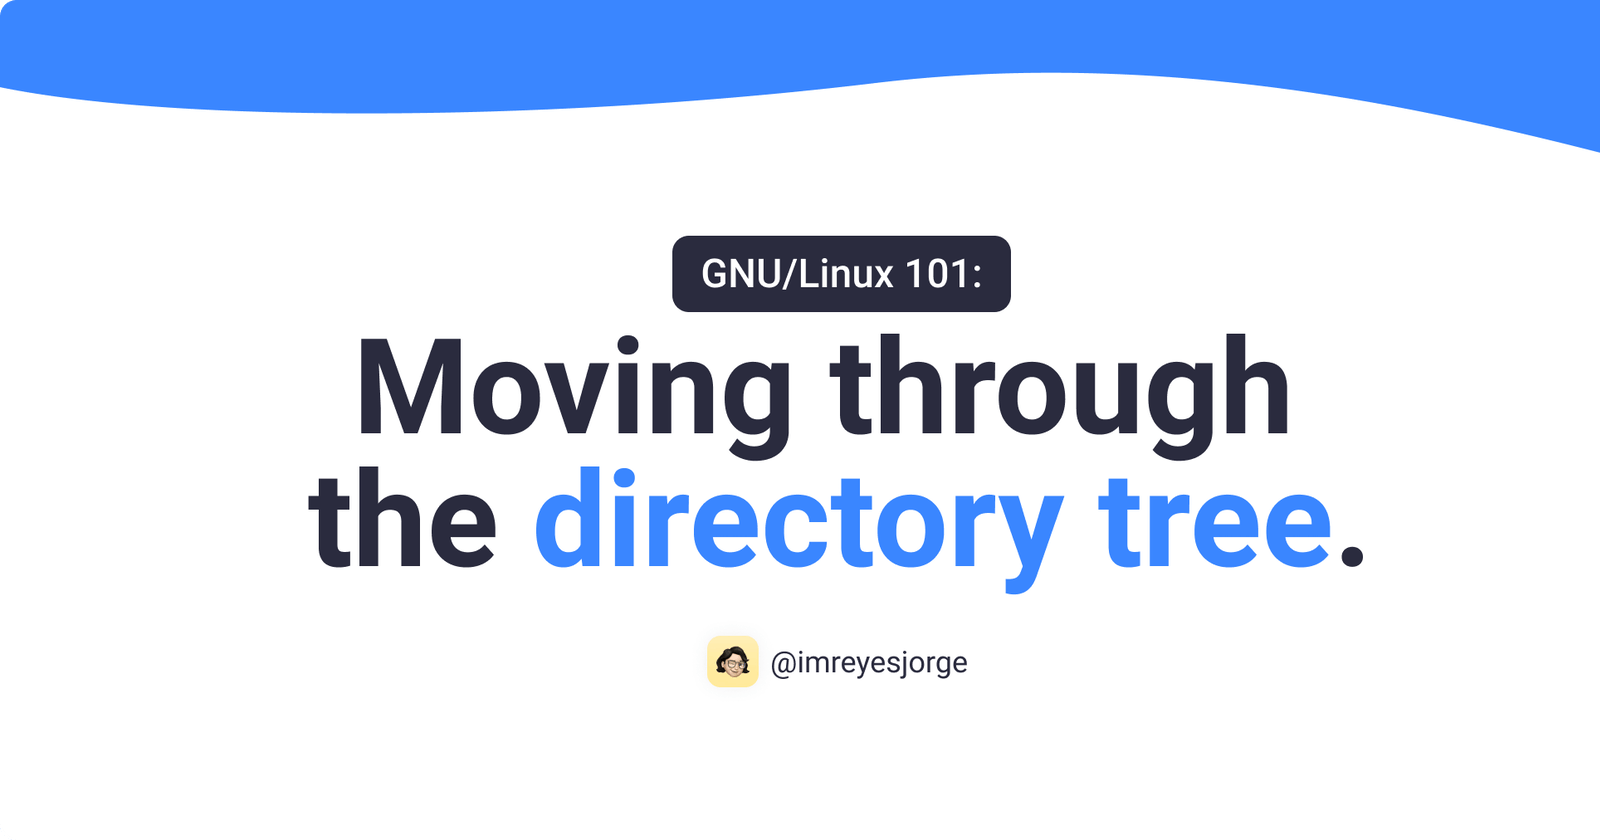 GNU/Linux 101: Moving through the directory tree